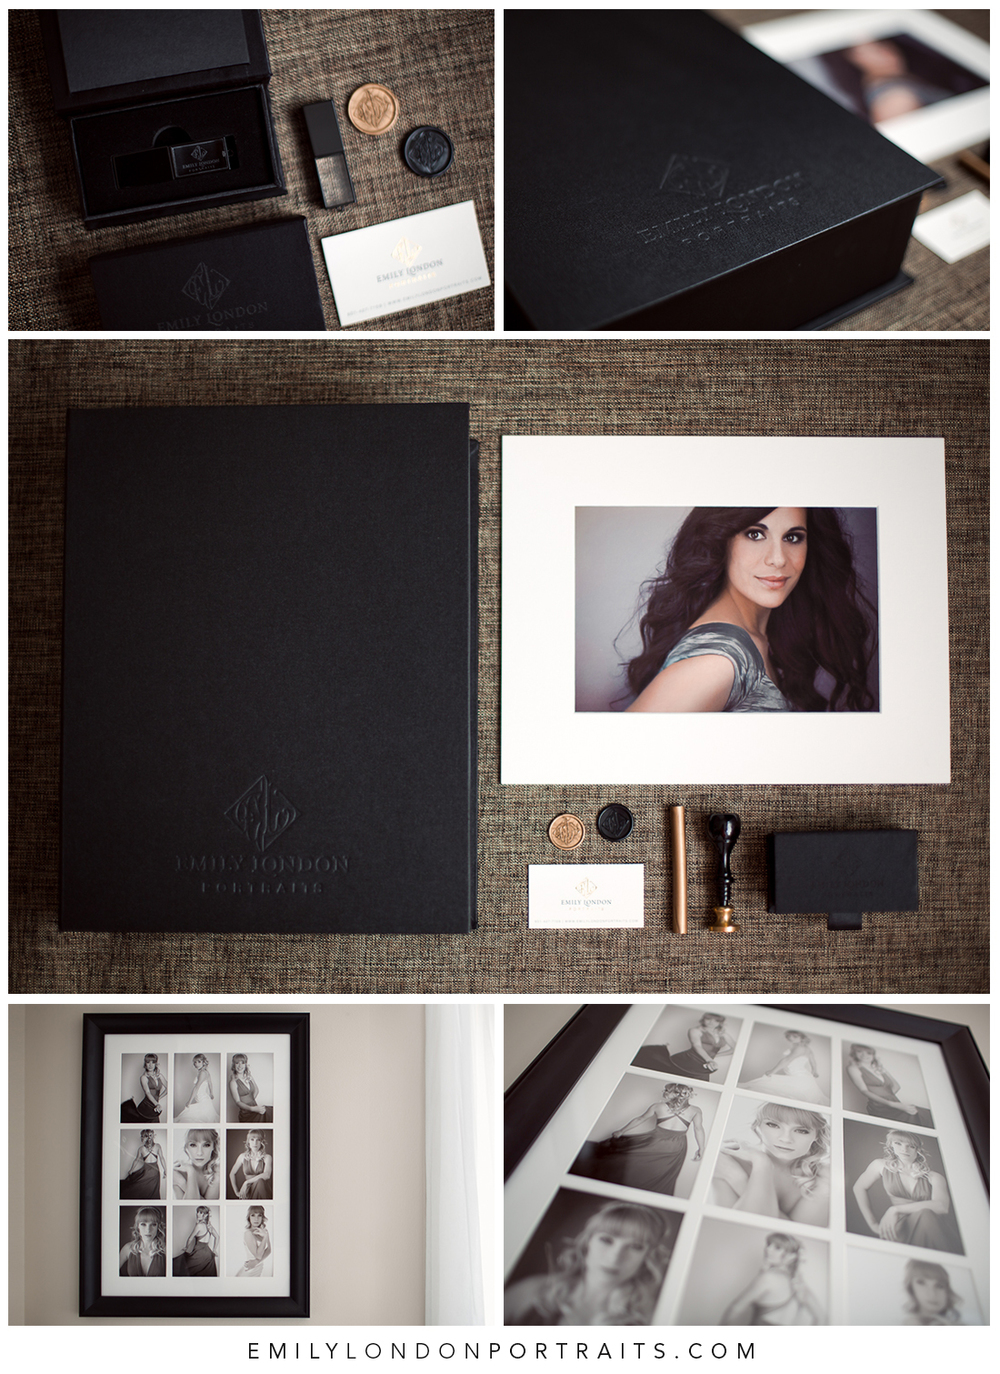 The beautiful products from a modern glamour photoshoot with Emily London Portraits in Salt Lake City.